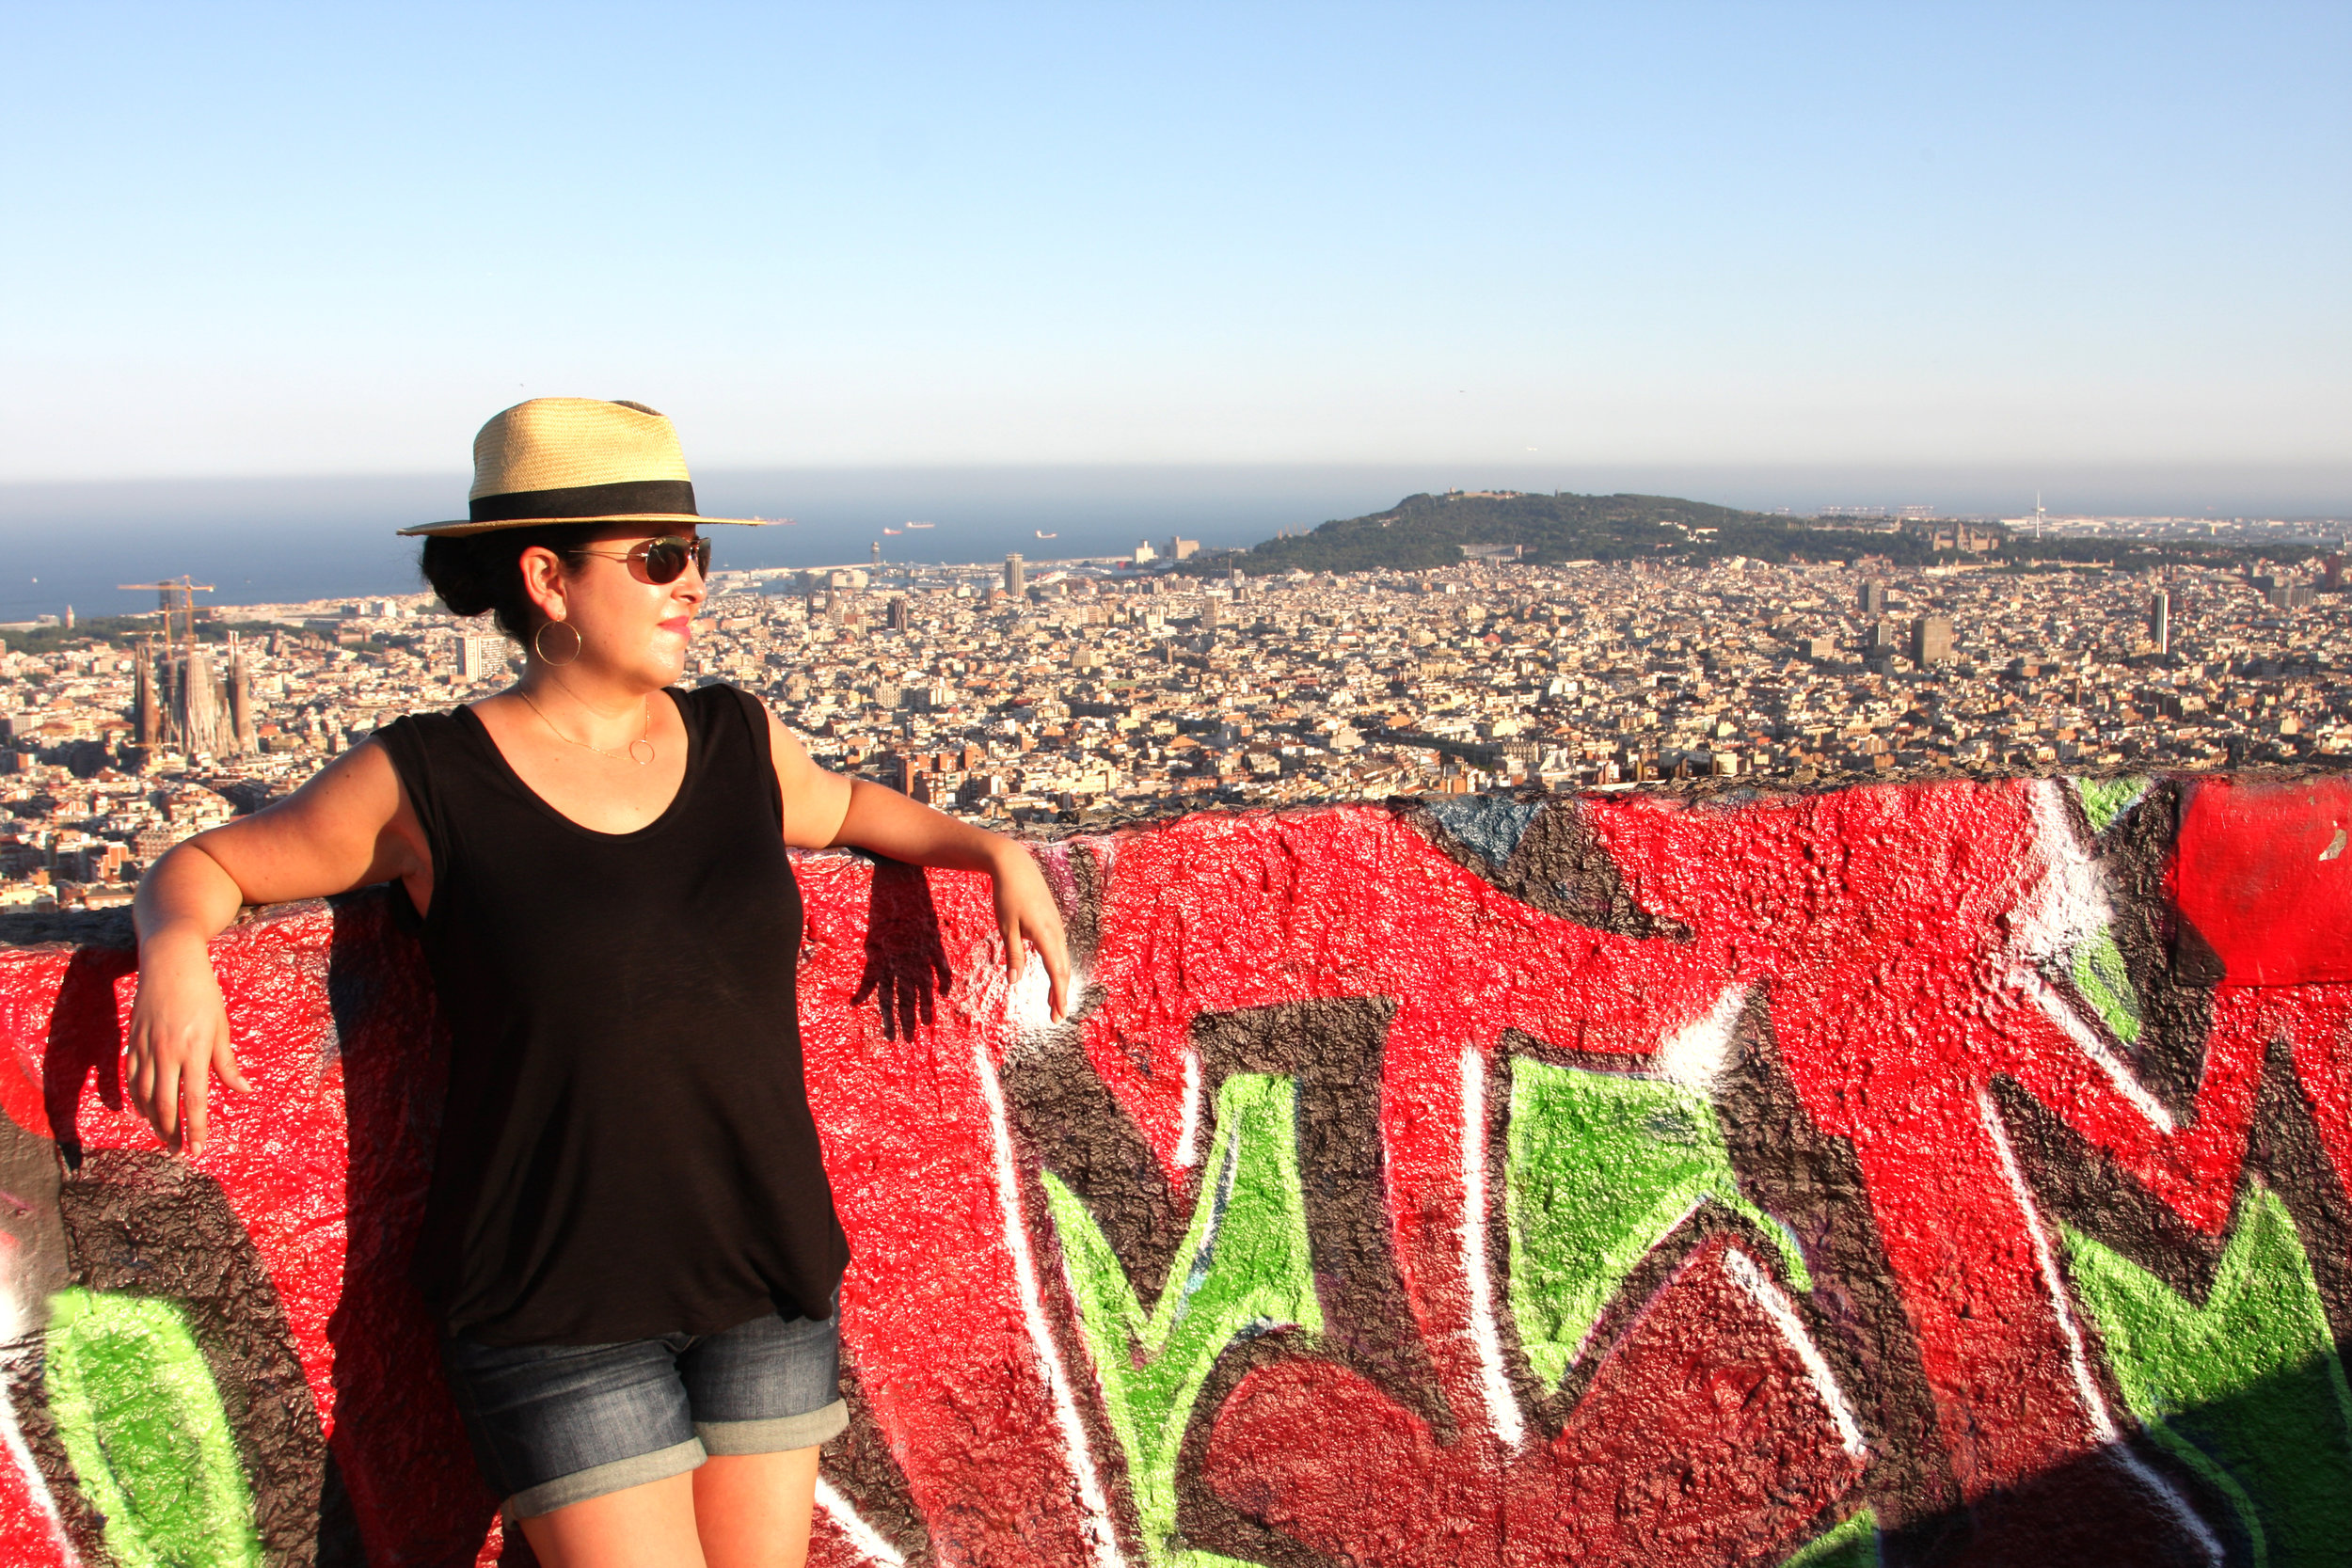 Melina soaking up the sun and scenery in Barcelona, Spain